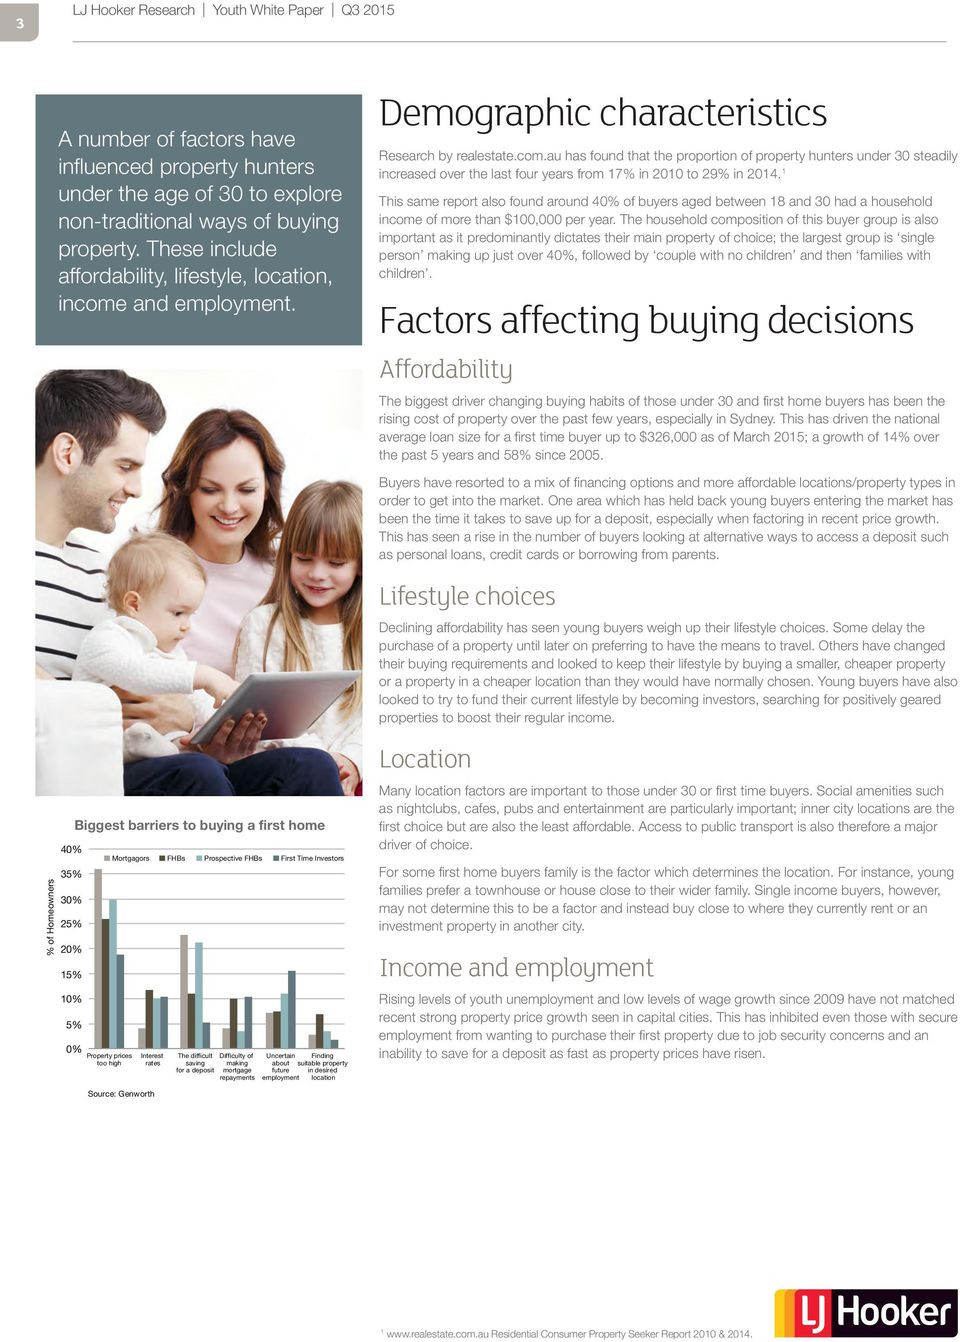 1 This same report also found around 40% of buyers aged between 18 and 30 had a household income of more than $100,000 per year.